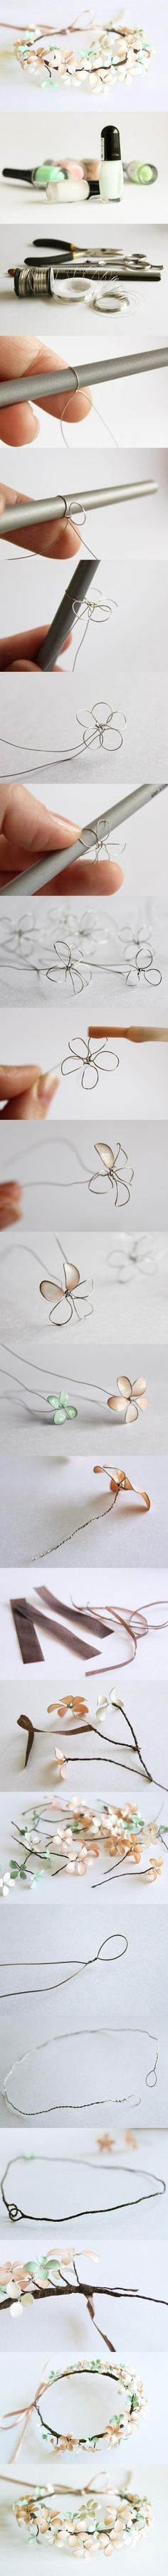 Its Amazing, bridesmaids tiara ideas?